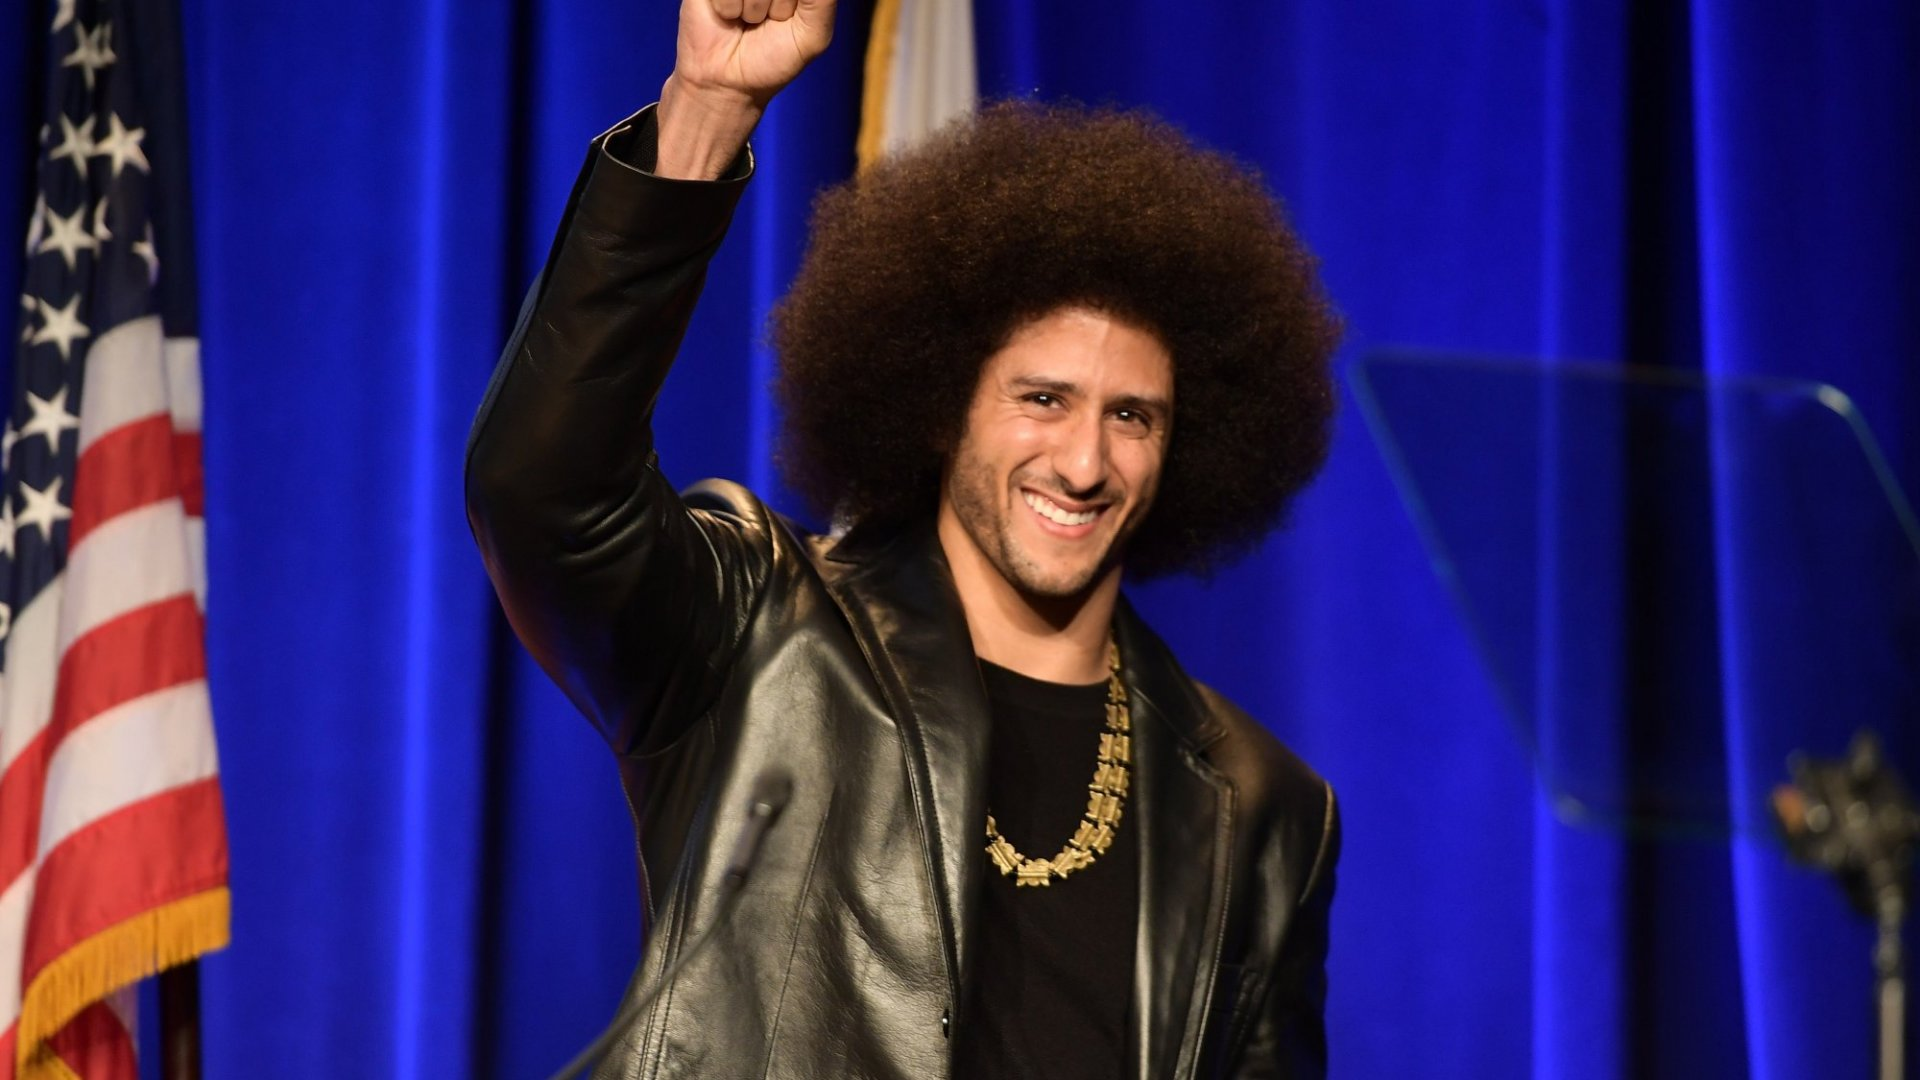 Nike Makes Colin Kaepernick Face of New Campaign and Polarizes Its Customers. Why That Is Good for Business